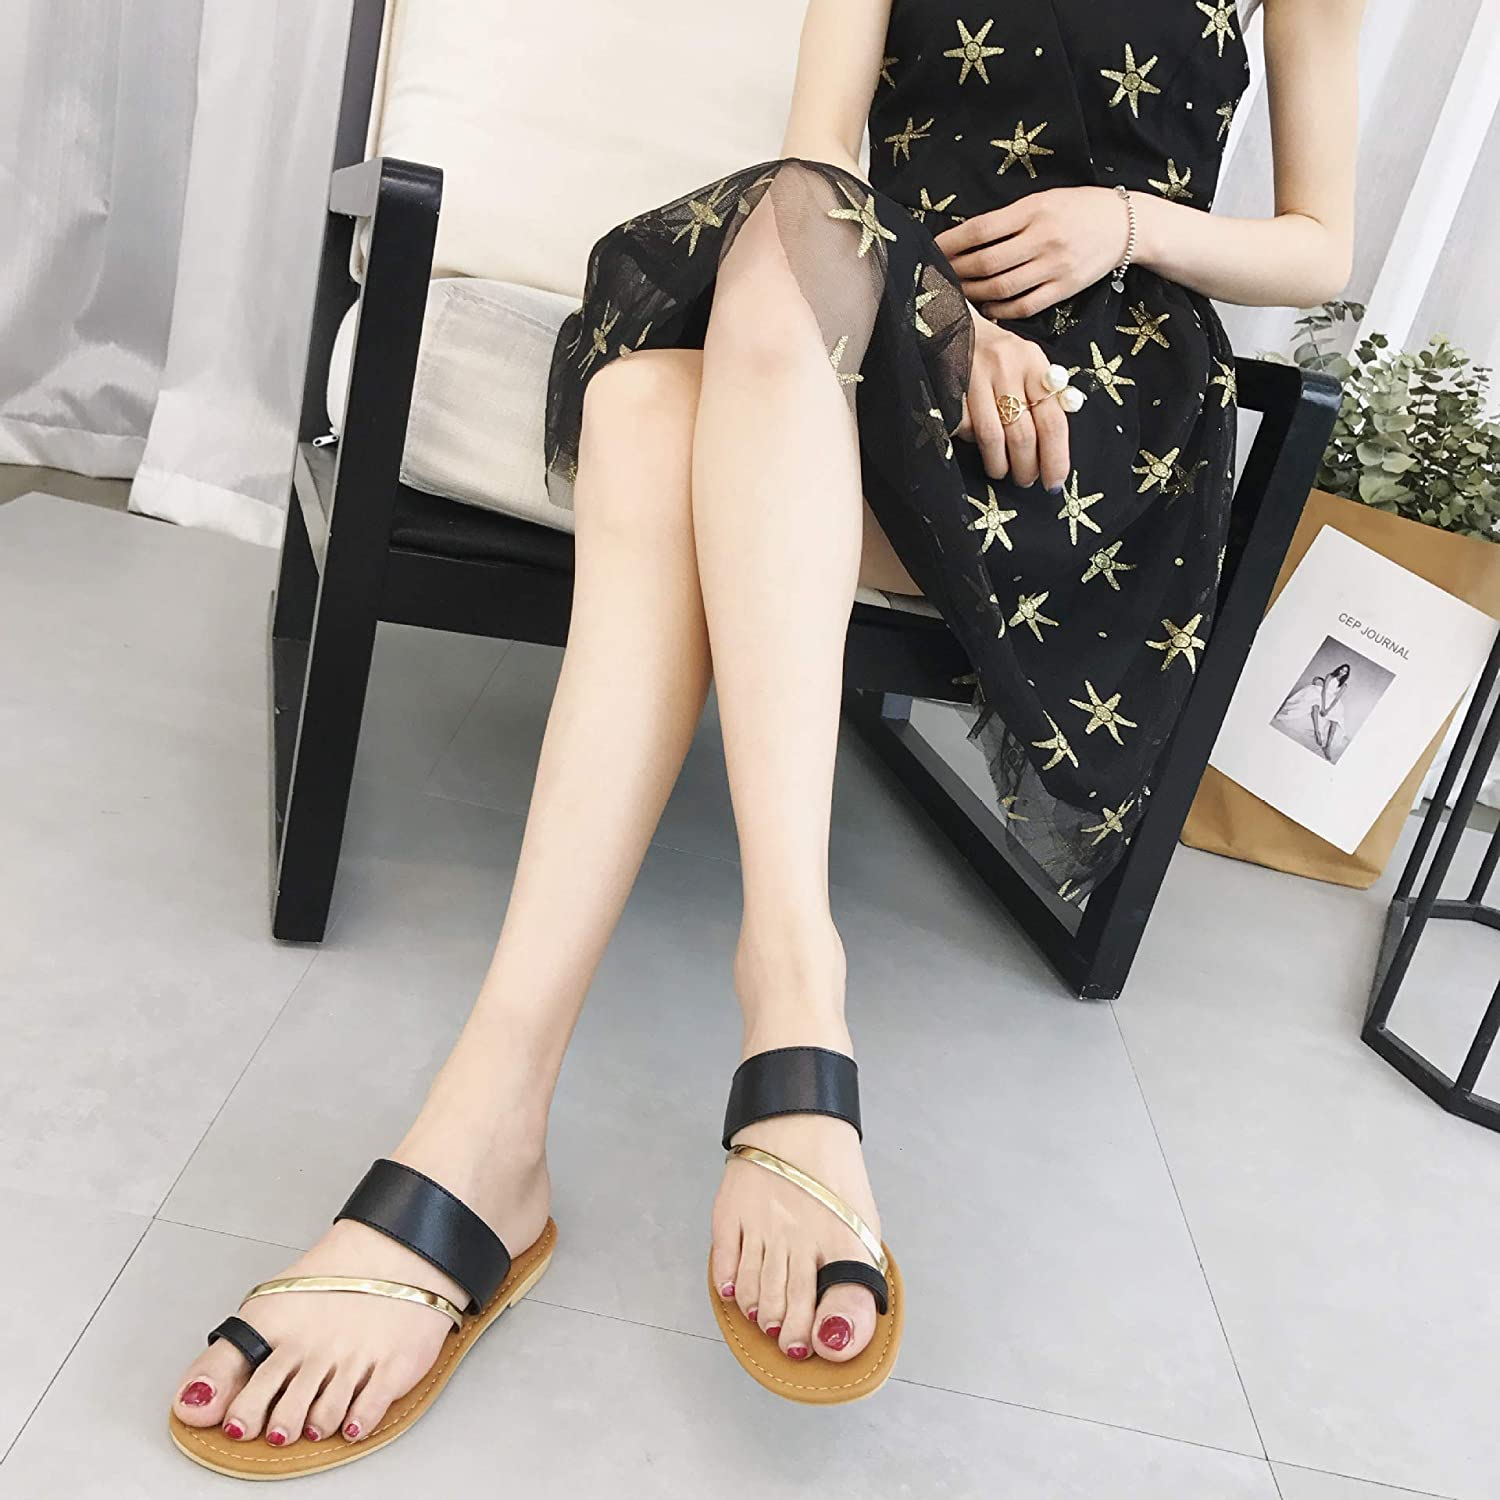 DNJKSA Sandals, Flatbed and Pinched Feet for Women and Korean Version in 2019, Fashionable Outwear, Comfortable Flat Heel